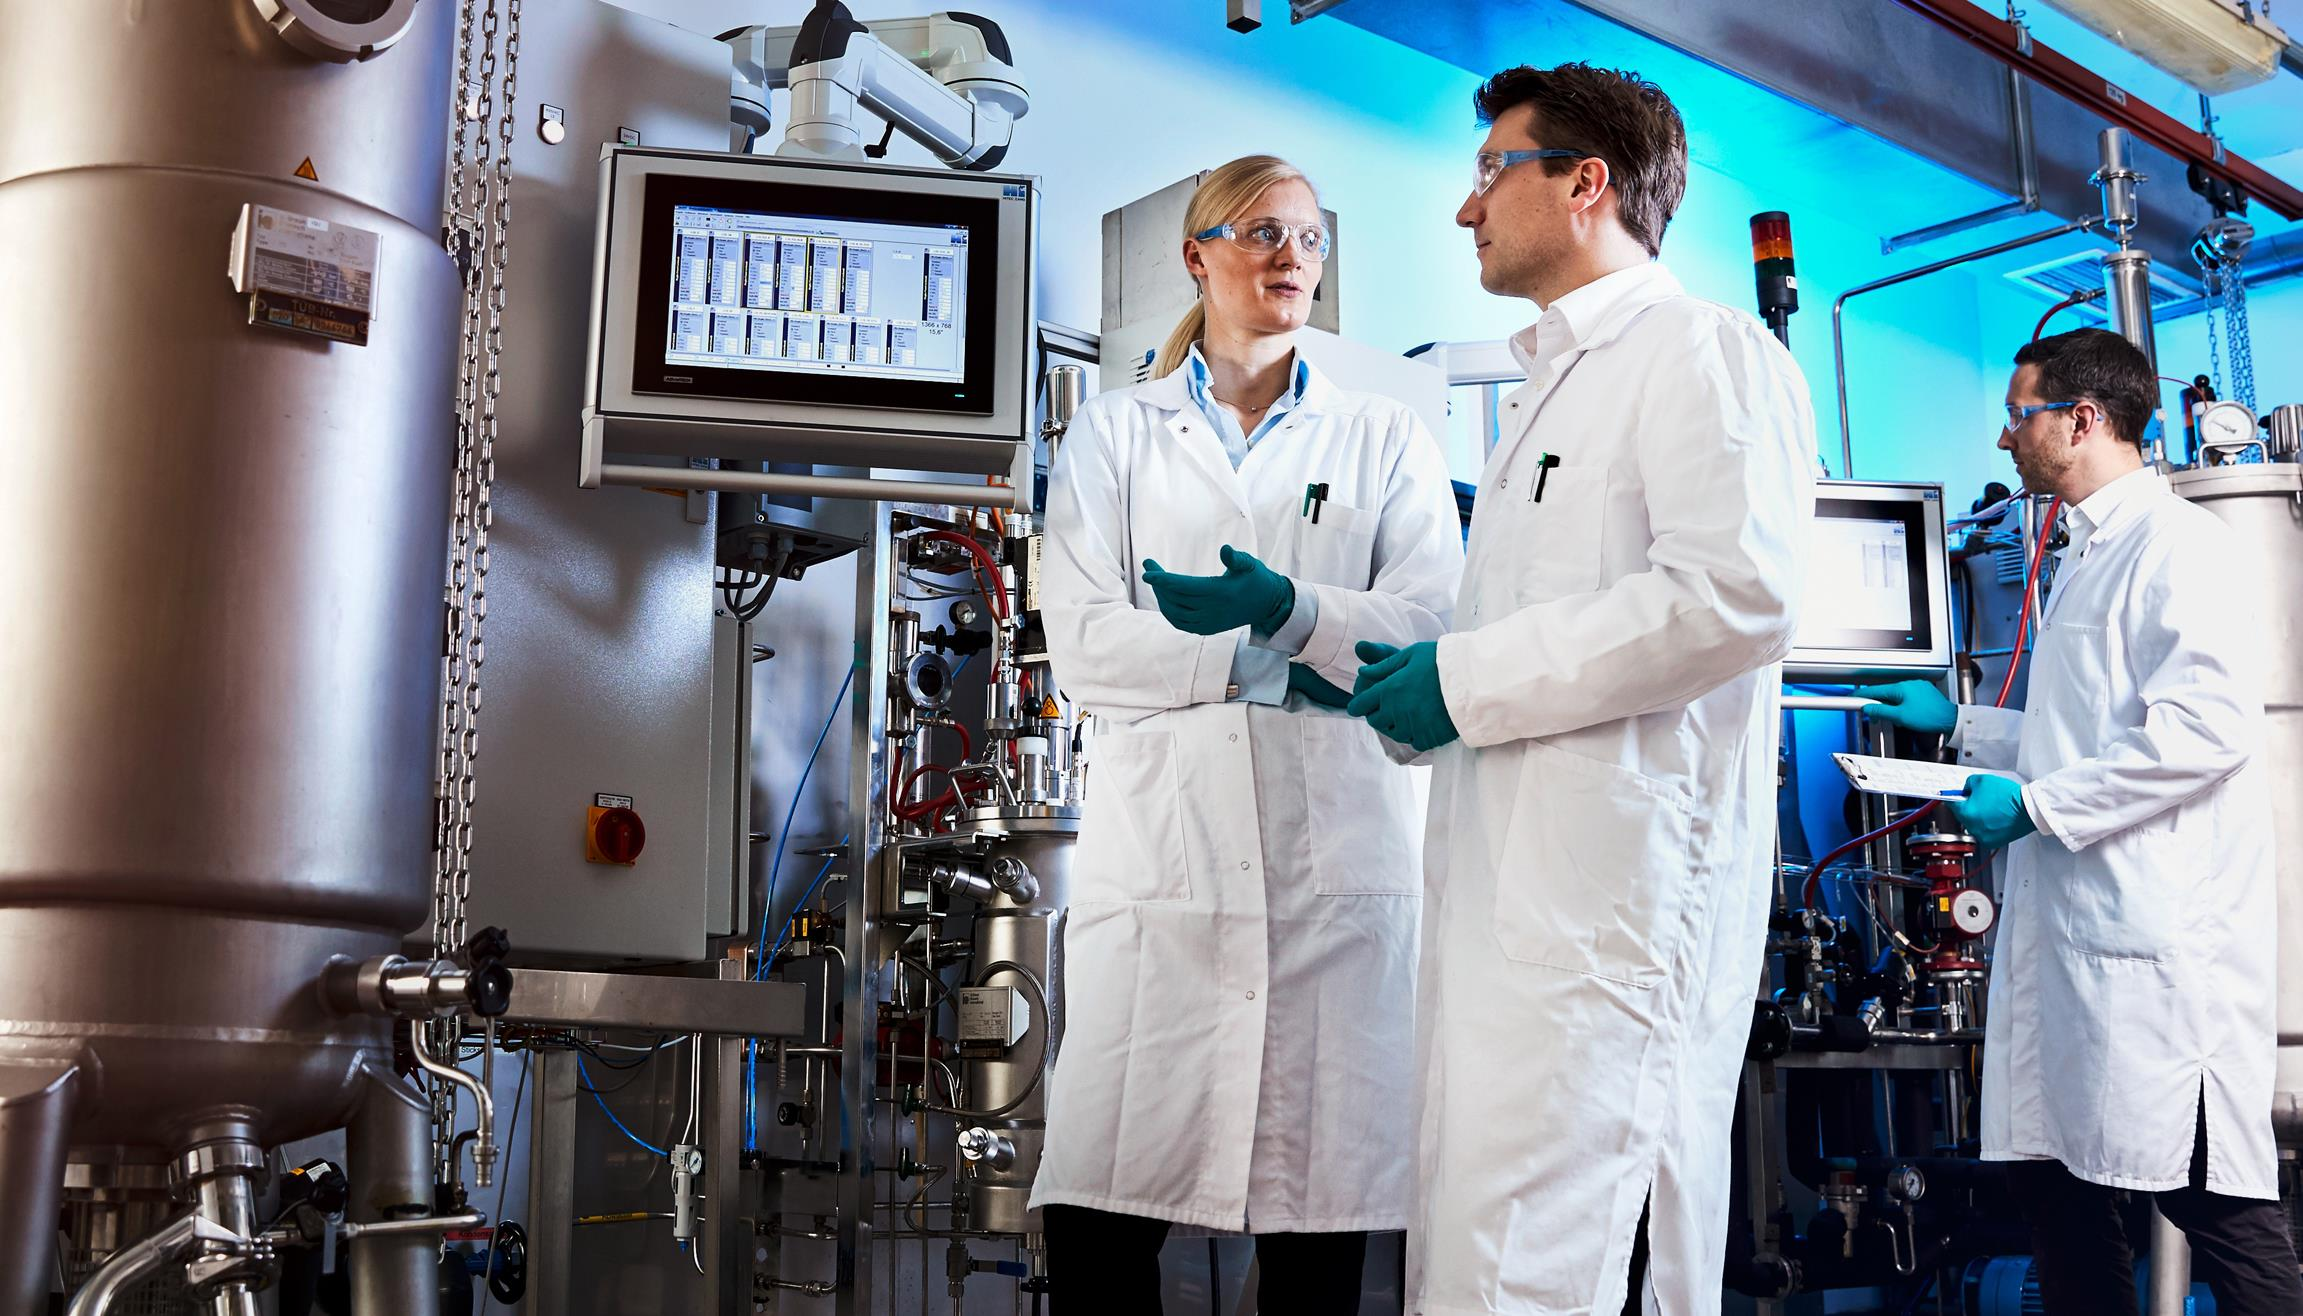 Production of bio-based aniline: The process works on a small scale. Project manager Dr. Gernot Jäger (center) is working with his team (Dr. Swantje Behnken (left), Dr. Wolf Kloeckner (right)) to test it in larger-scale facilities (Source: Covestro)